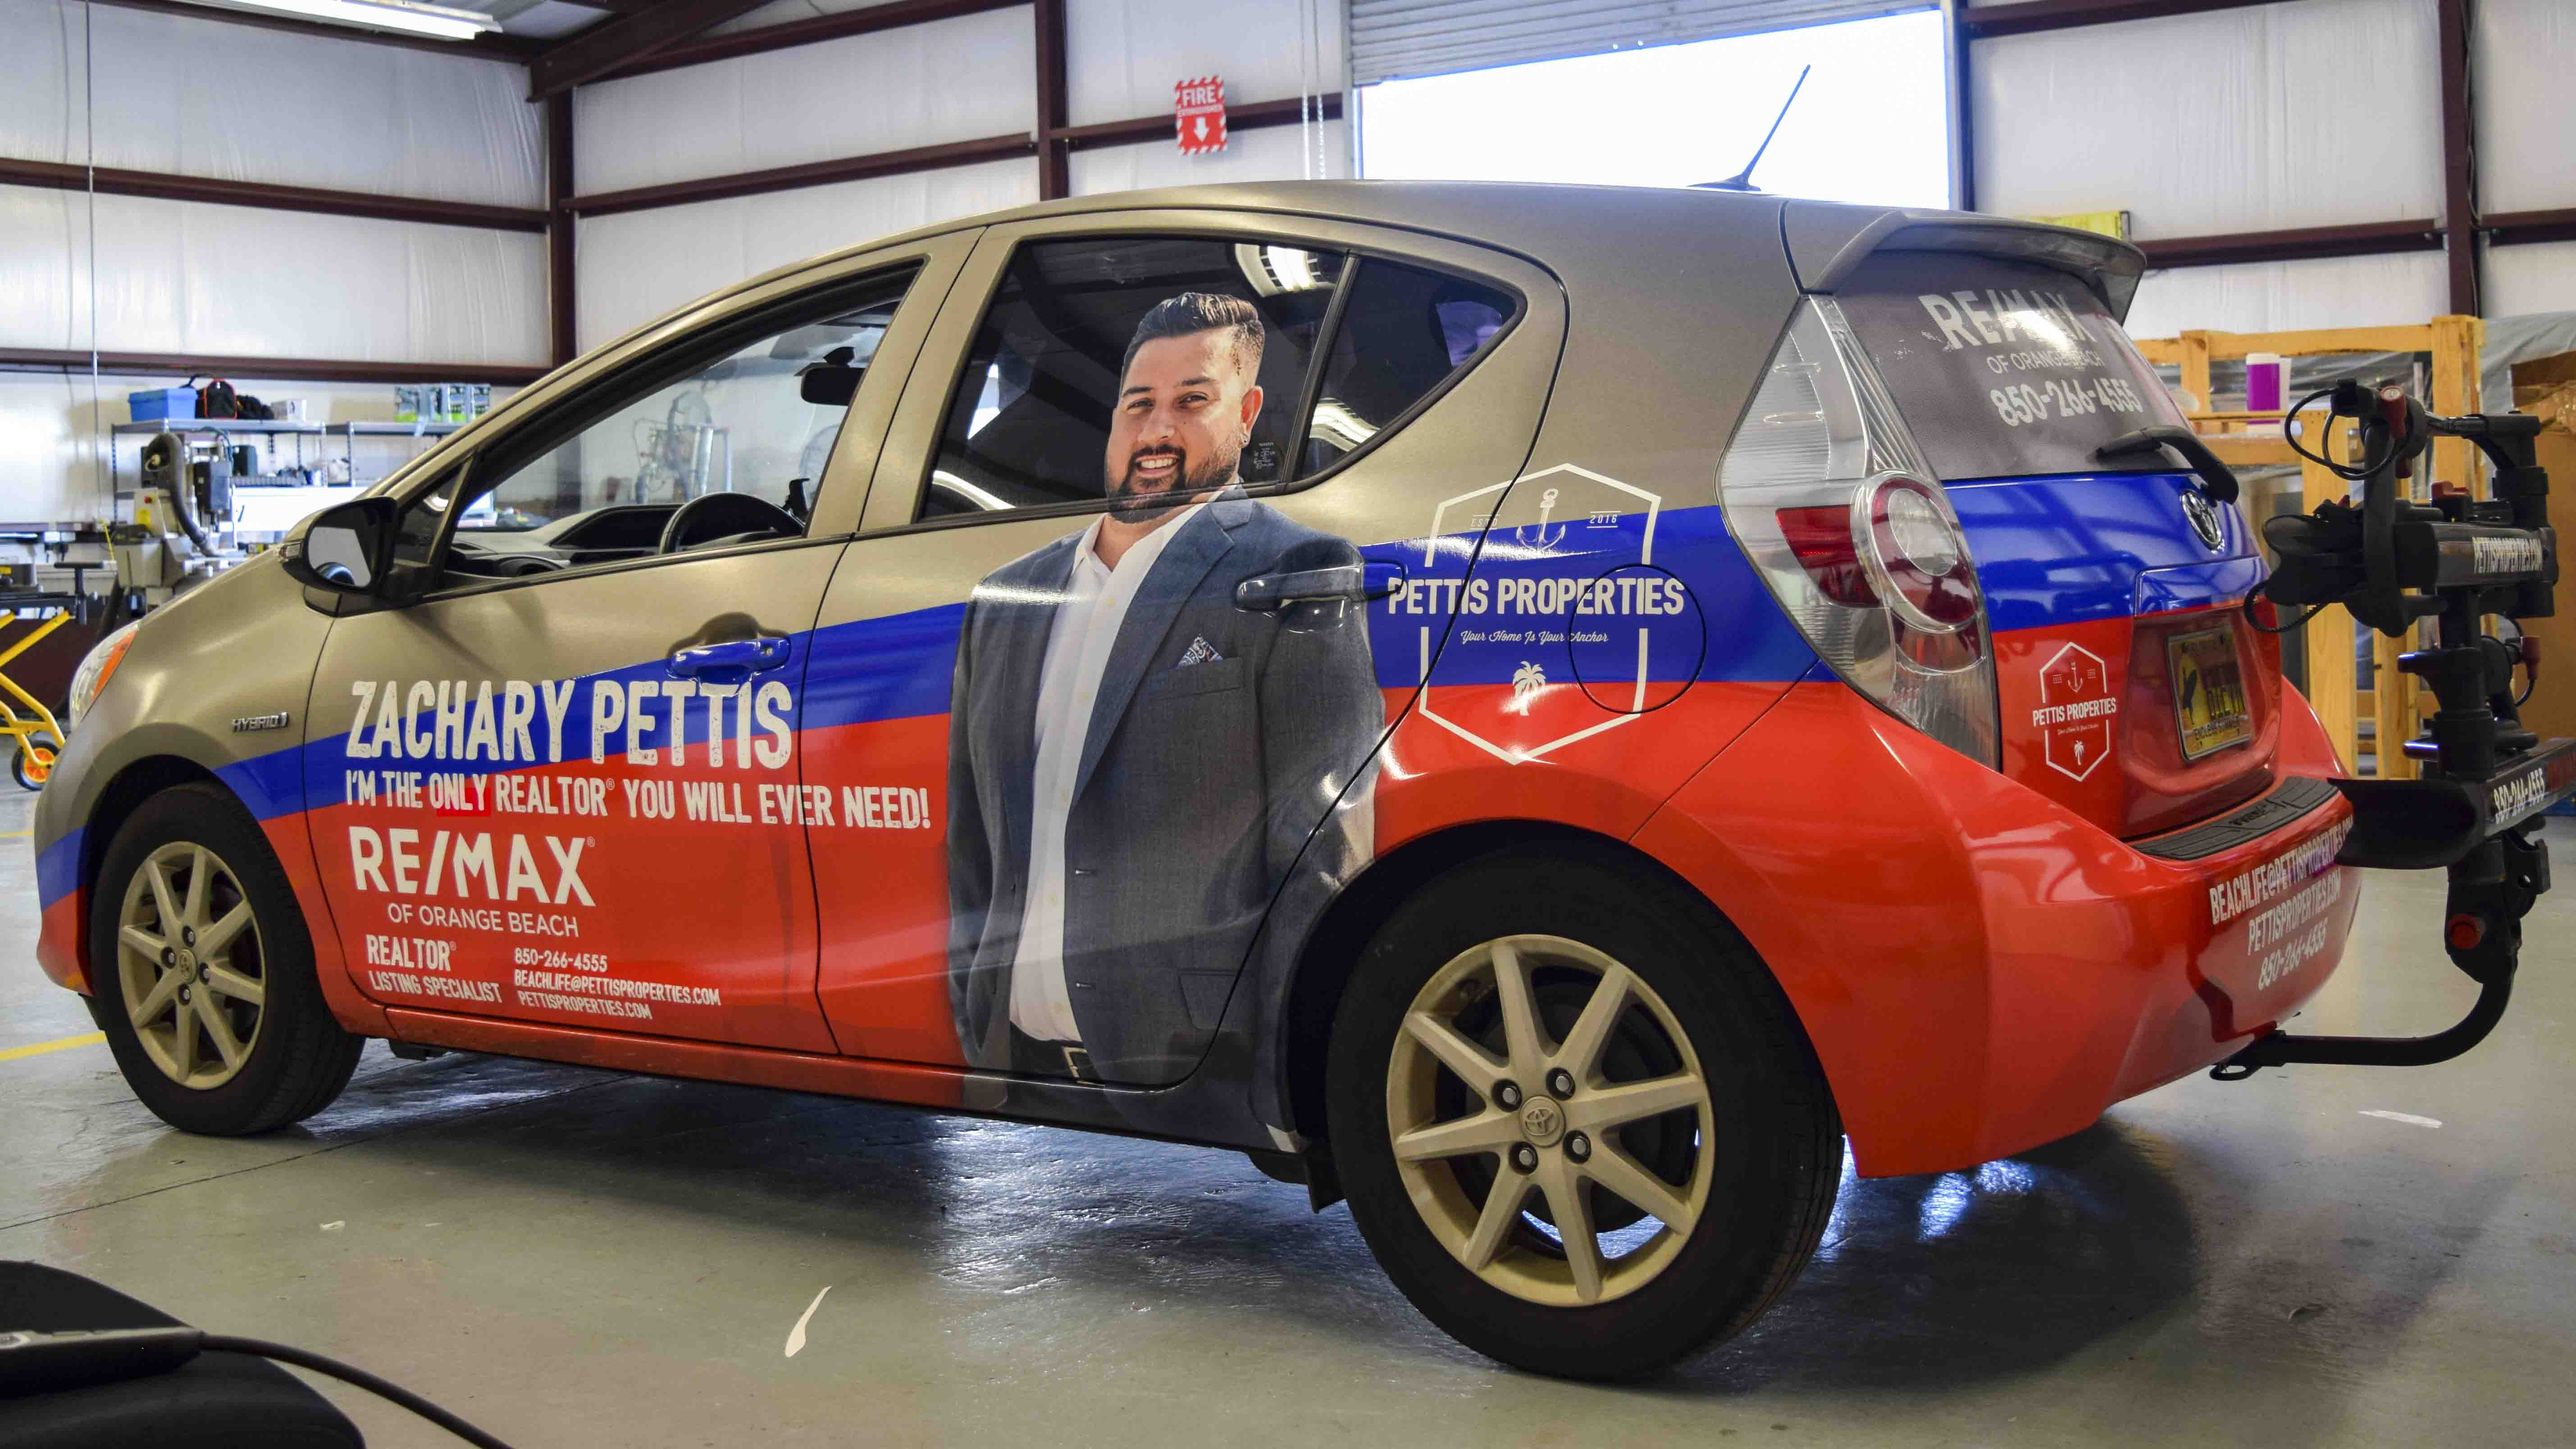 Pensacola Sign - Vehicle Wrap for Zachary Pettis